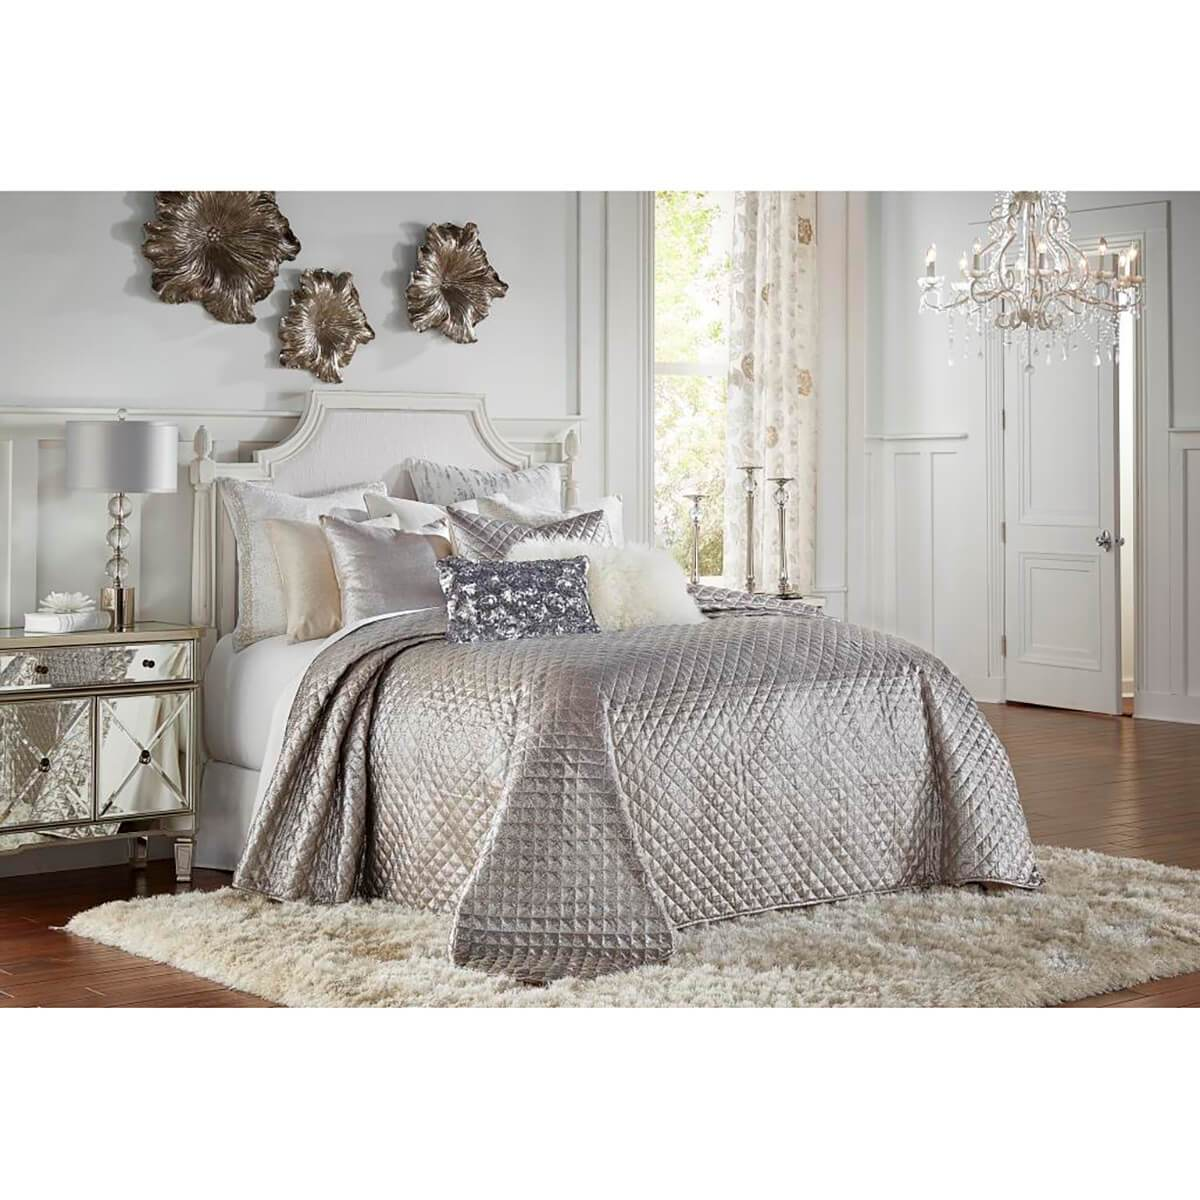 Cloud 9 Aura Quilt Set Metallic Silver High Fashion Home